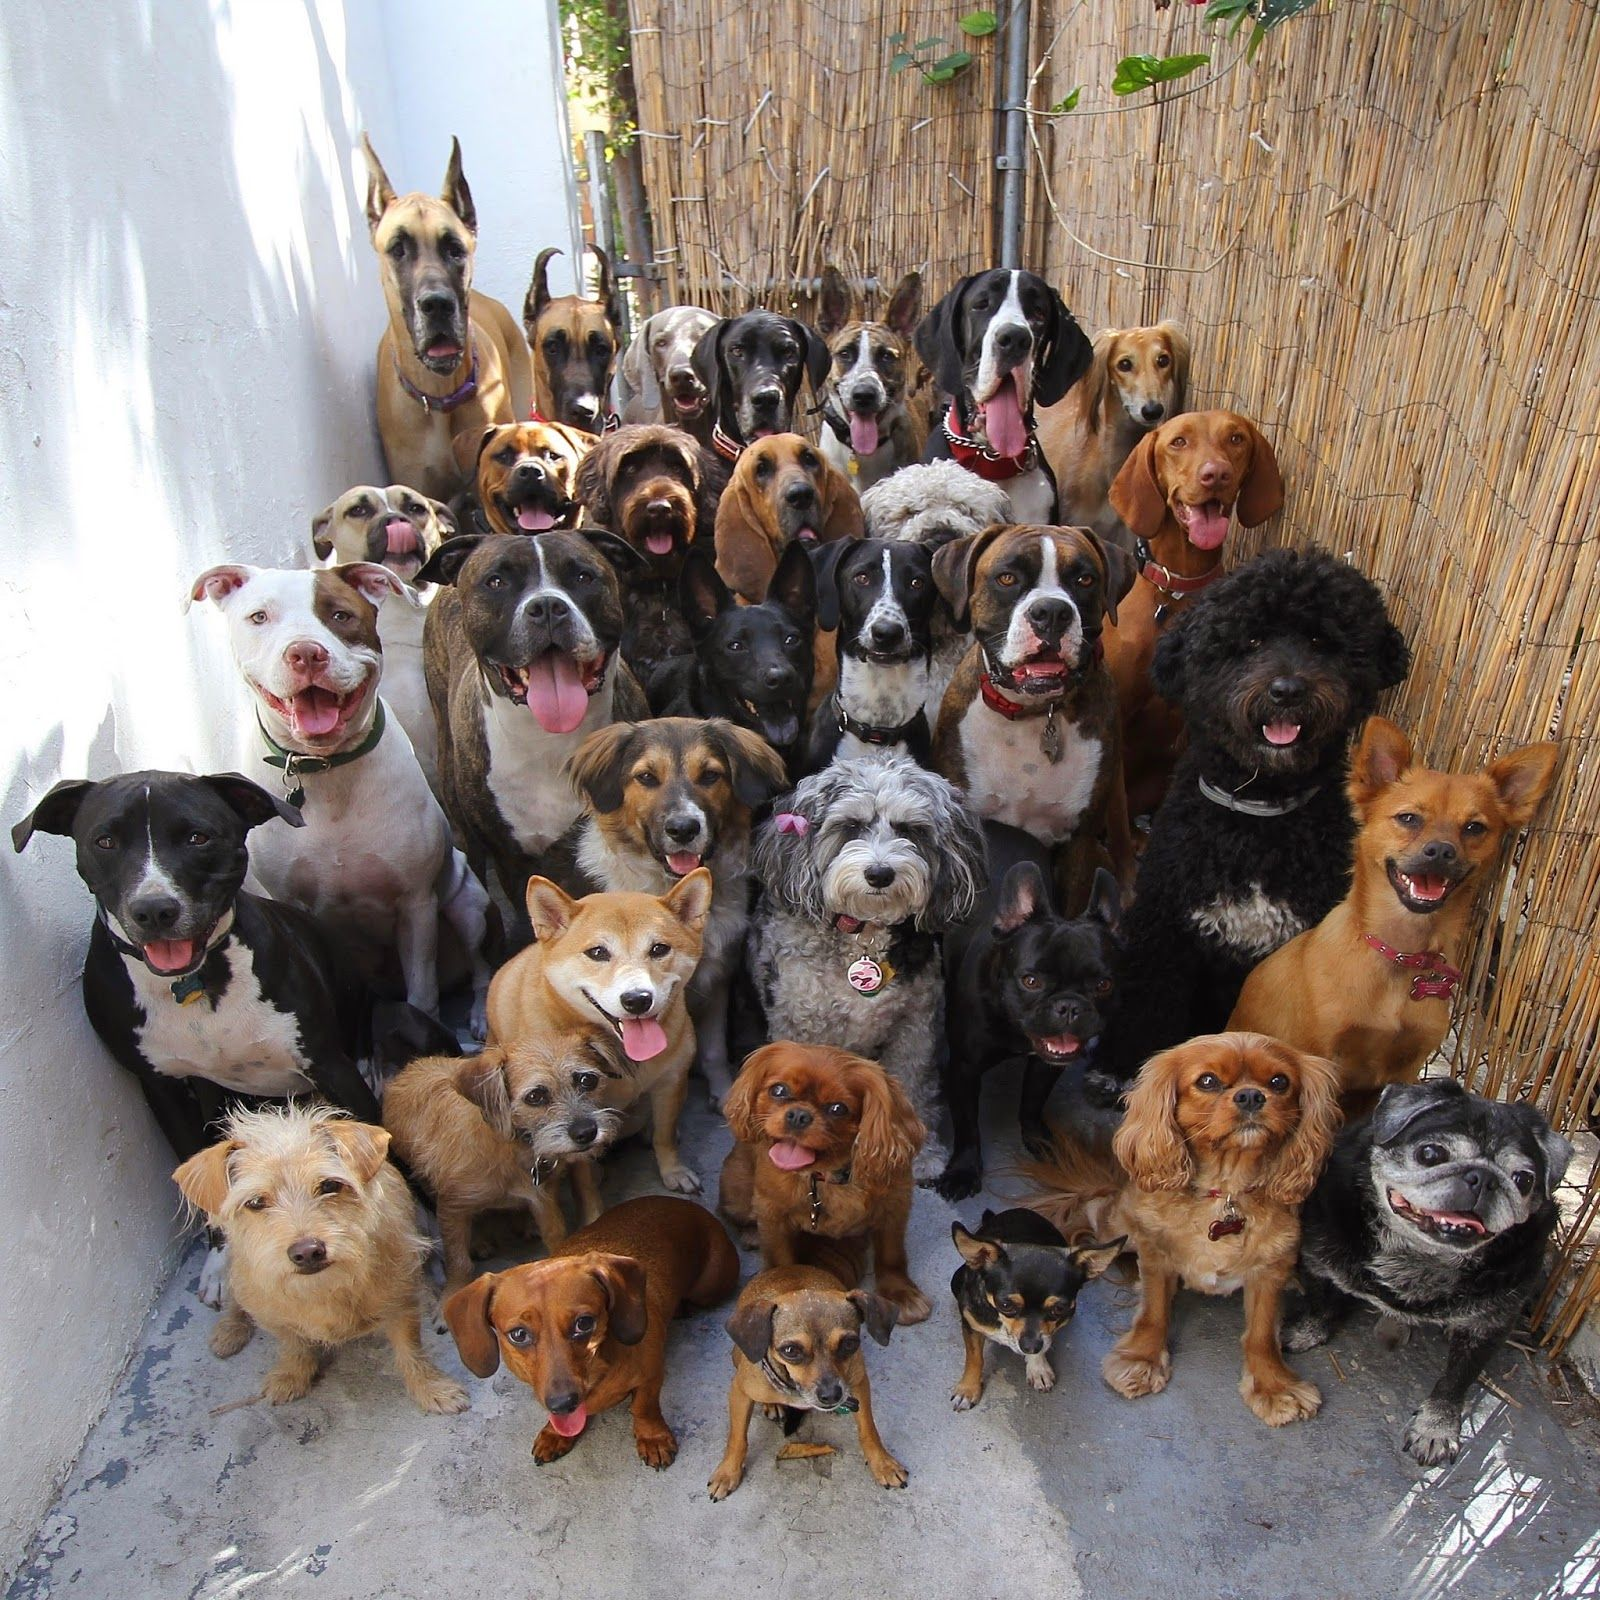 I Love all Dog Breeds. All of 'em.